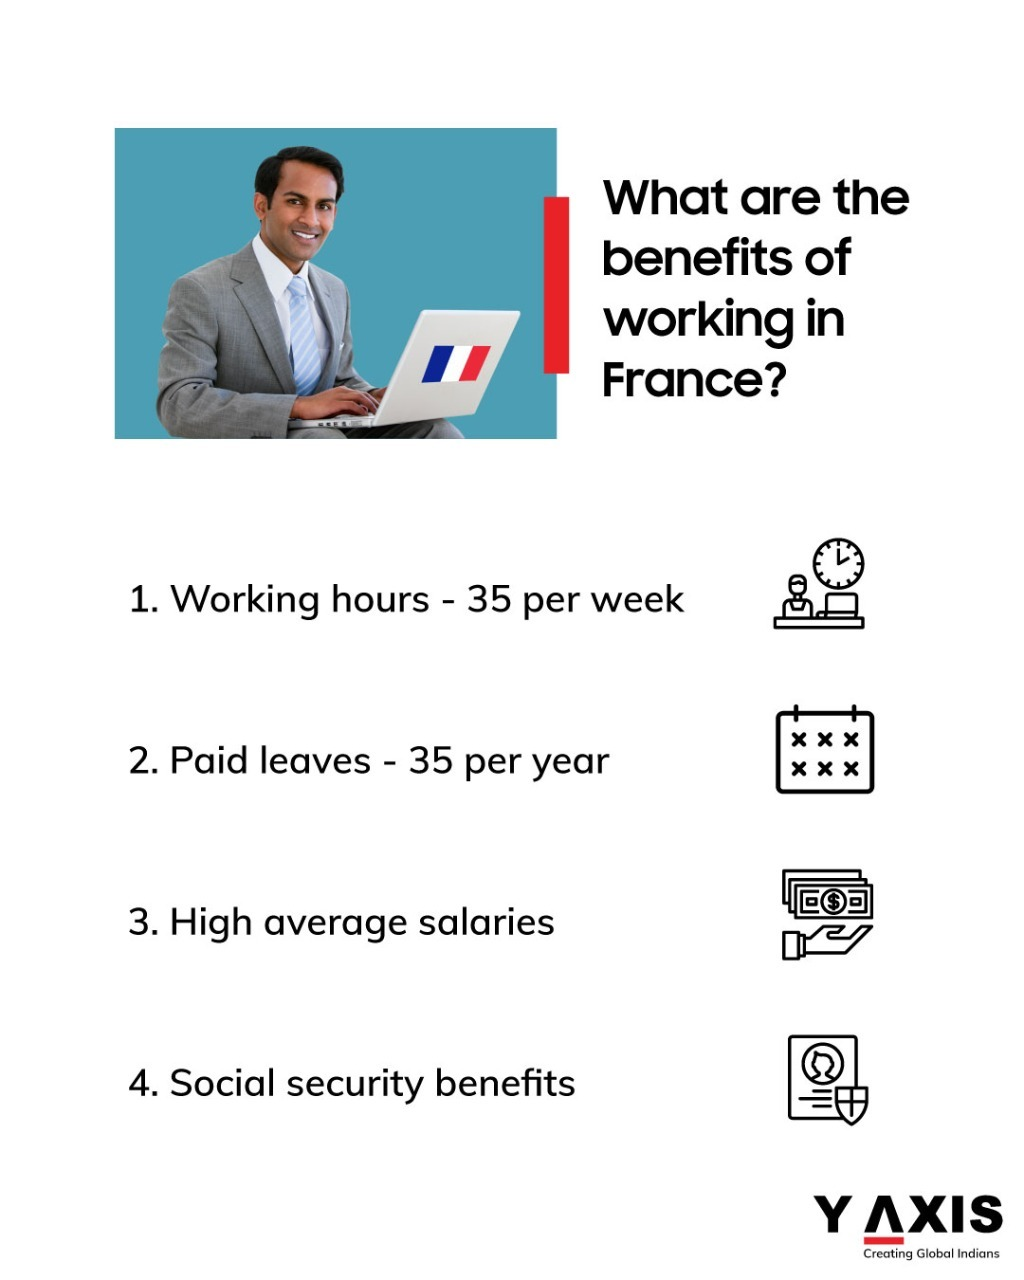 The benefits you will get if you work in France